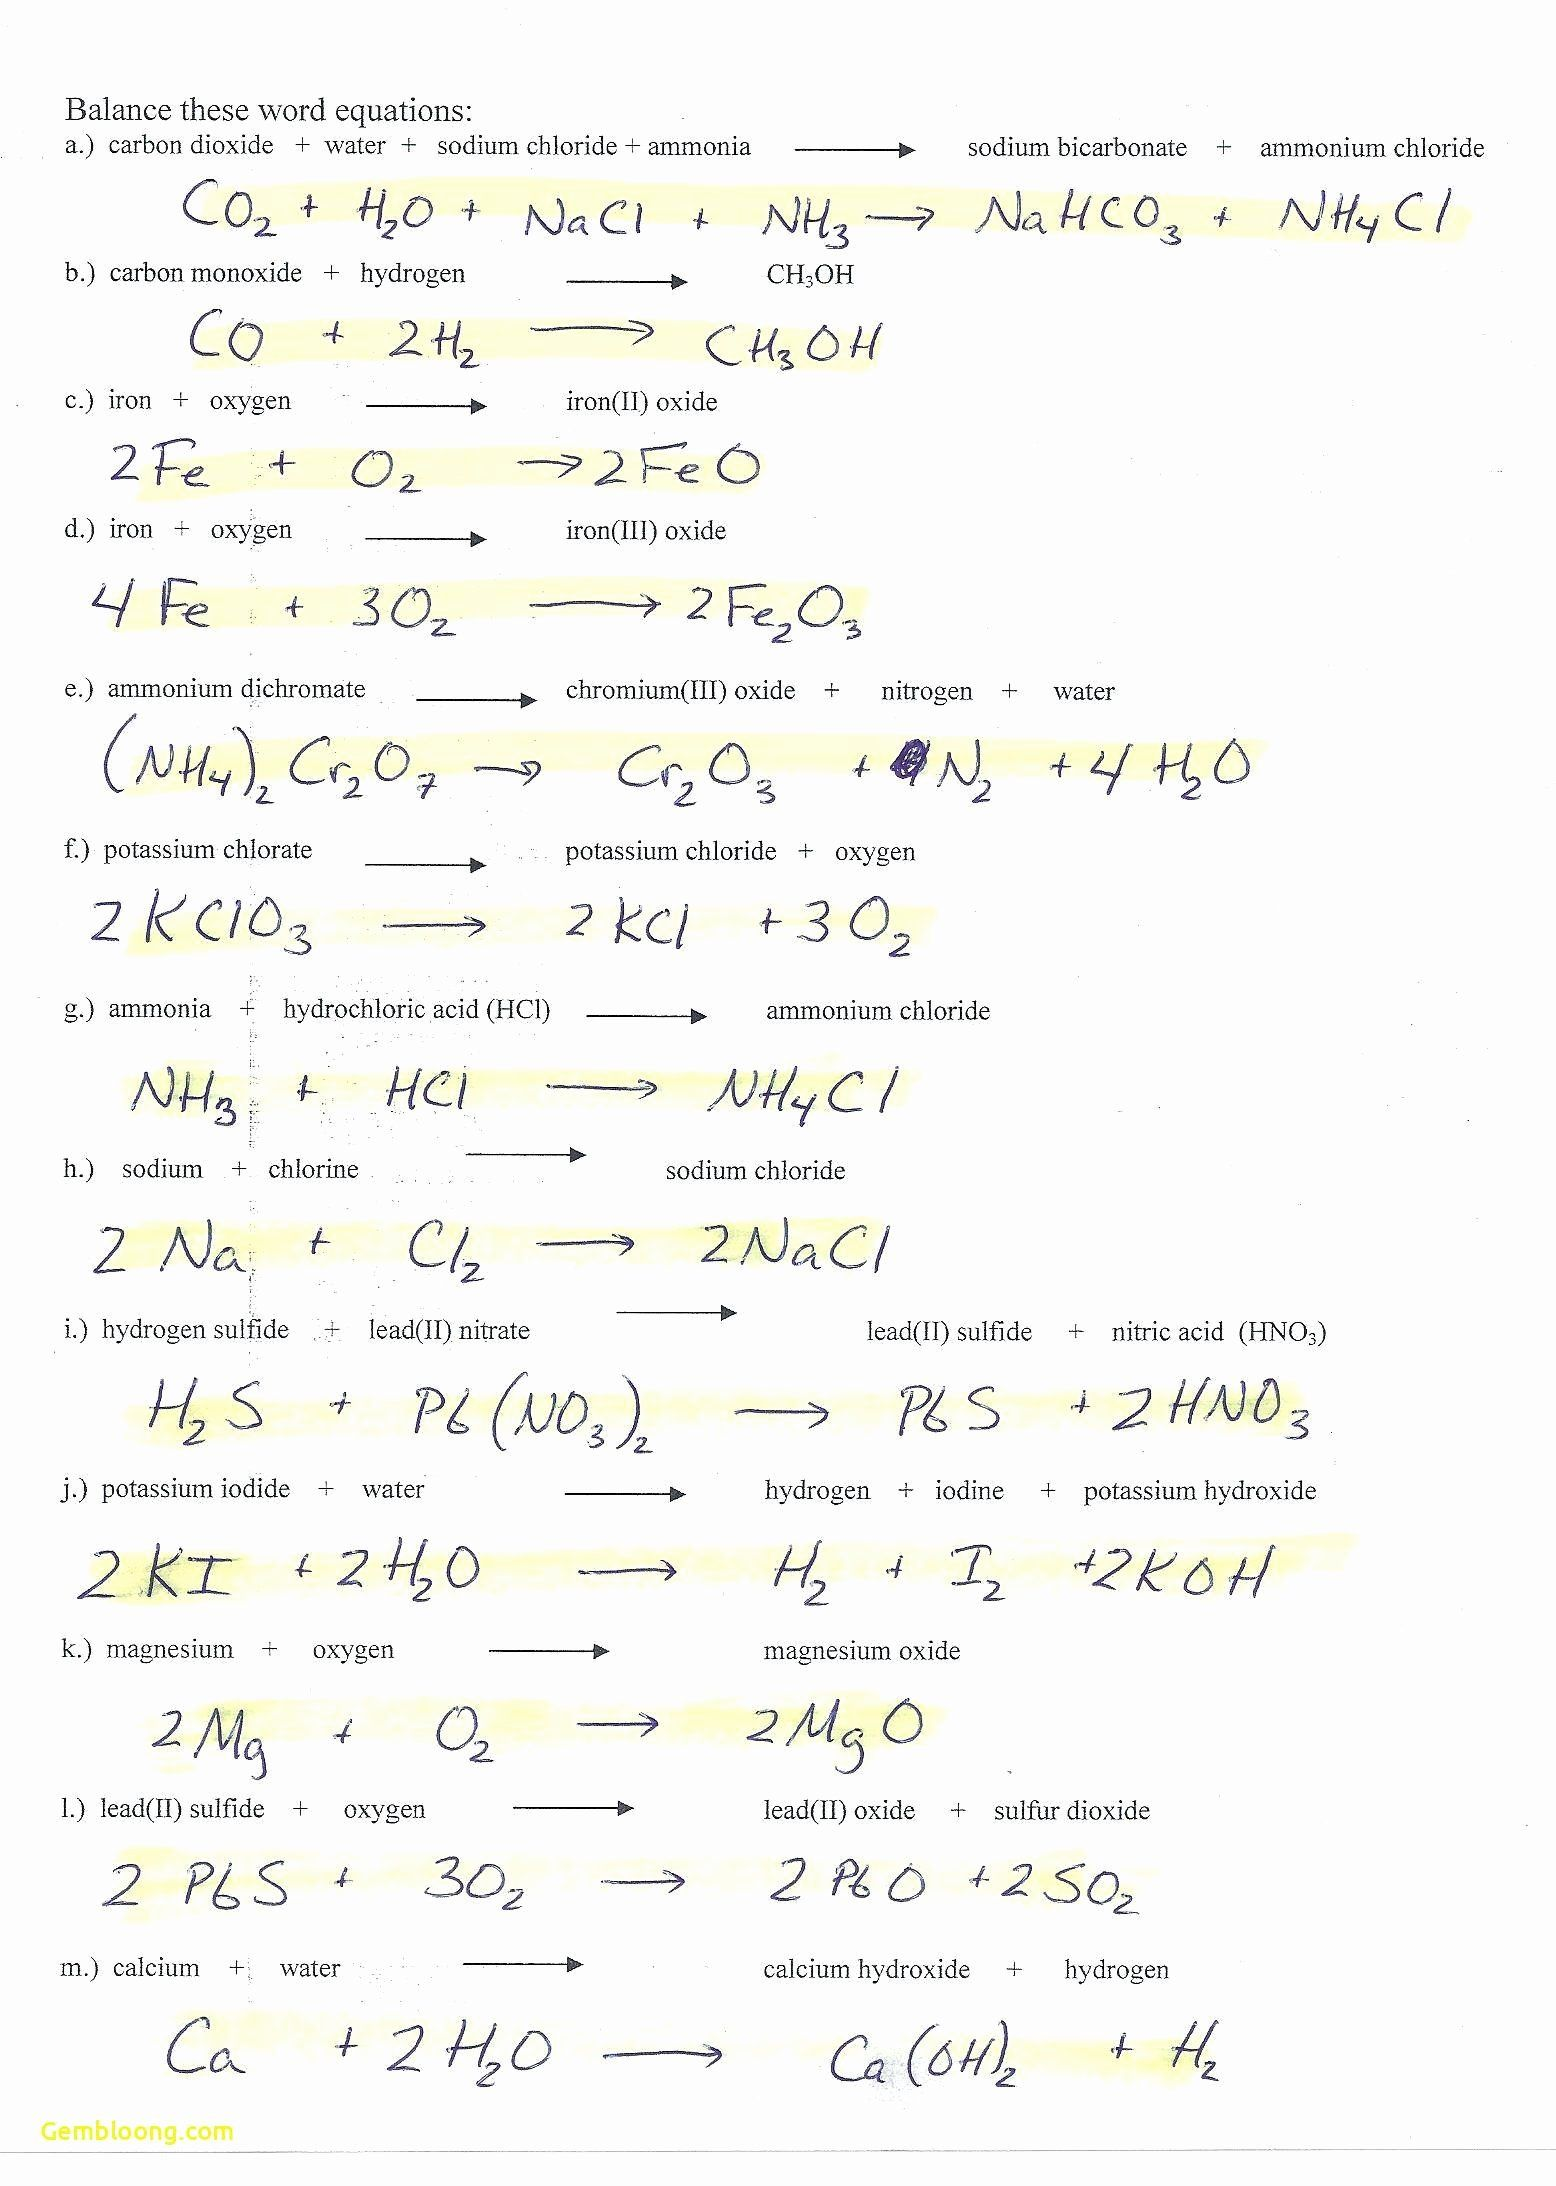 Limiting Reactant Worksheet Answers Beautiful Limiting